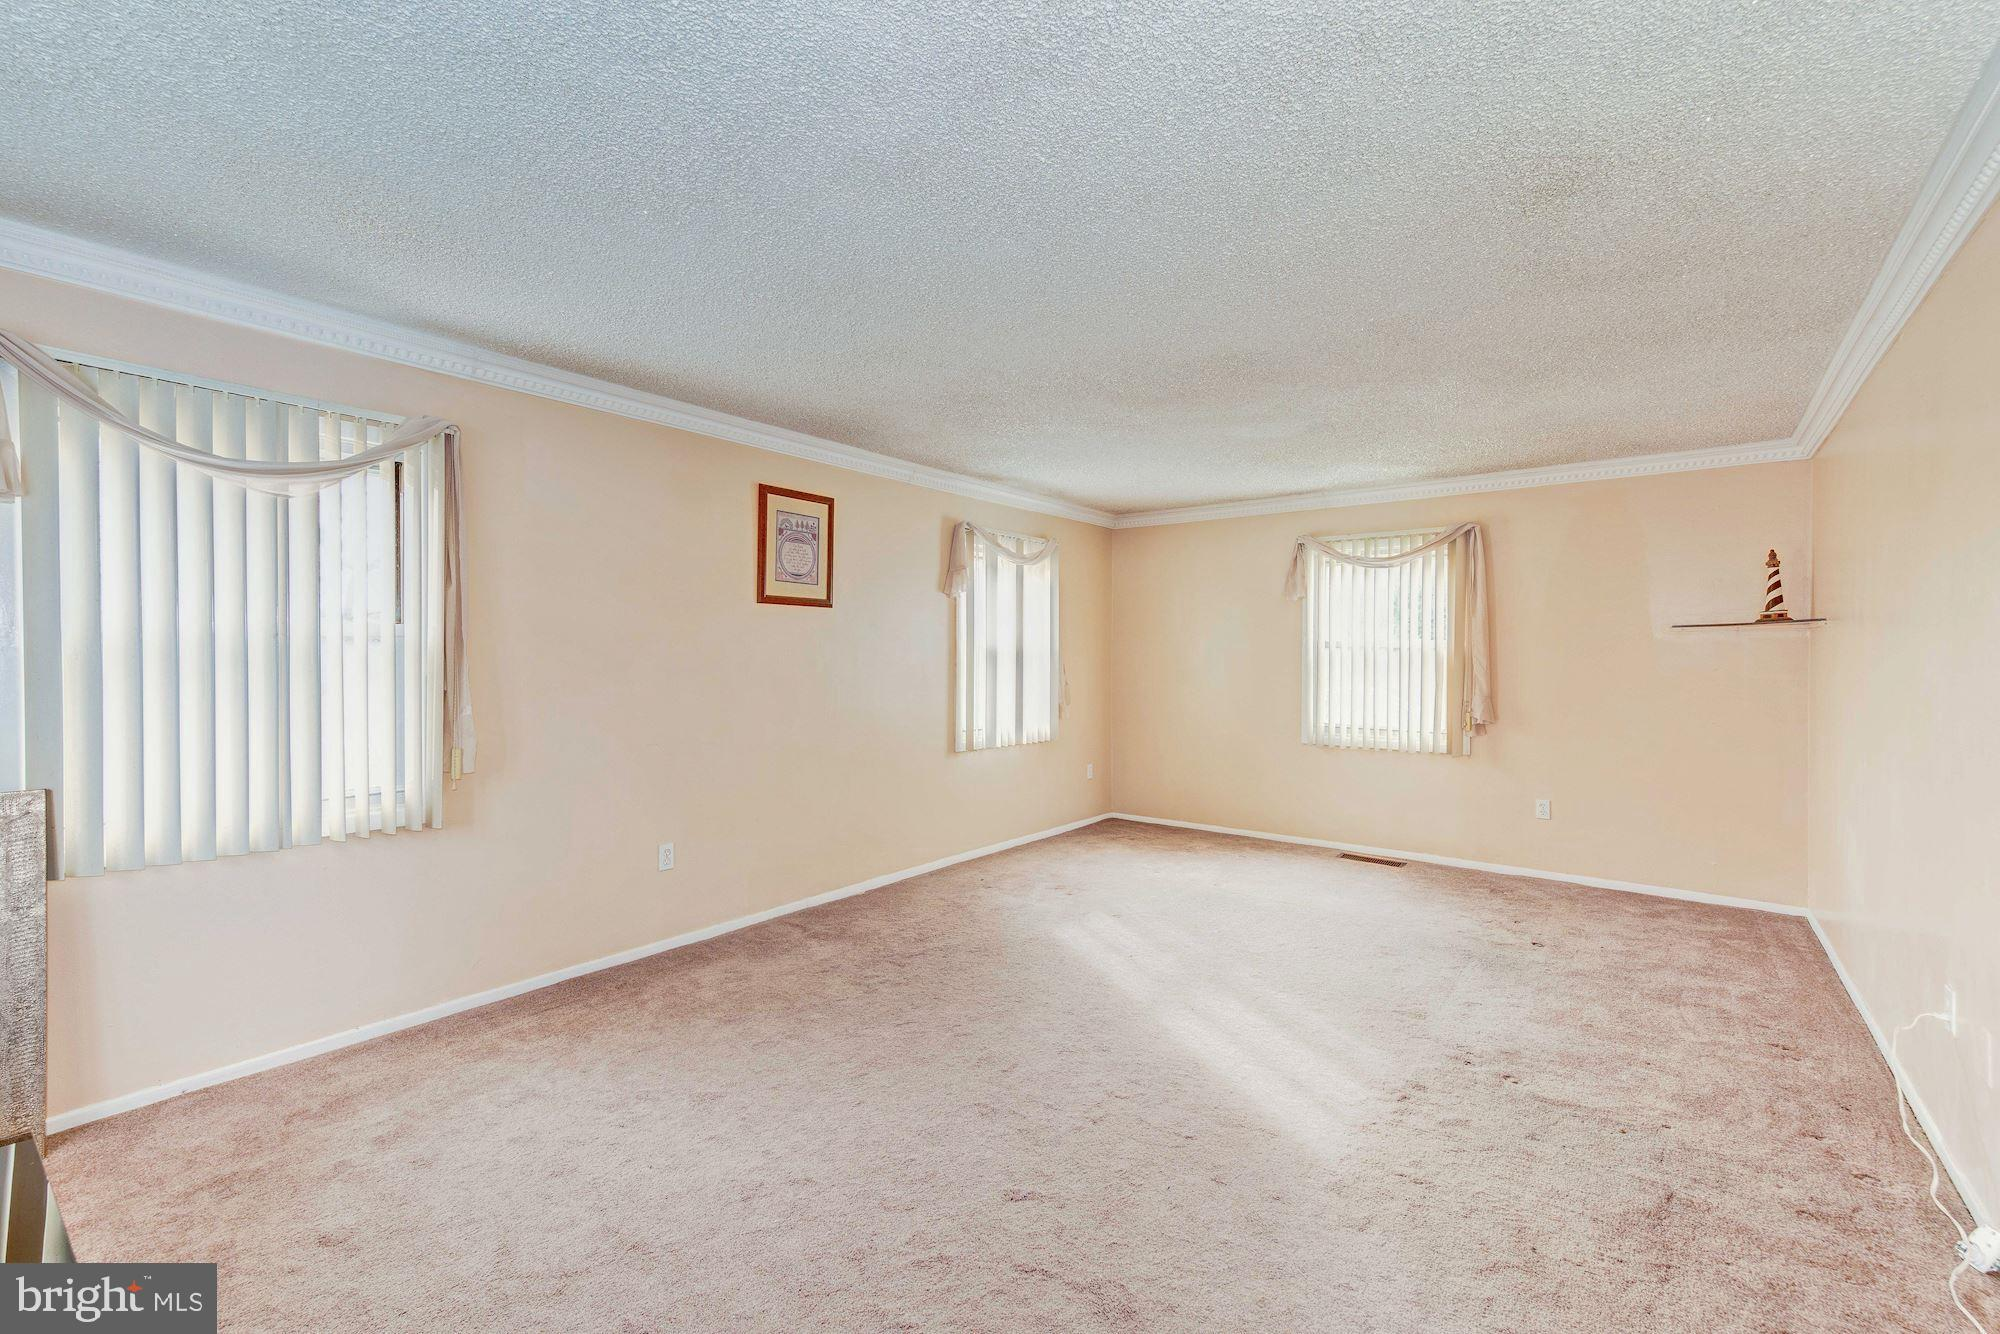 Living Room carpet and crown molding